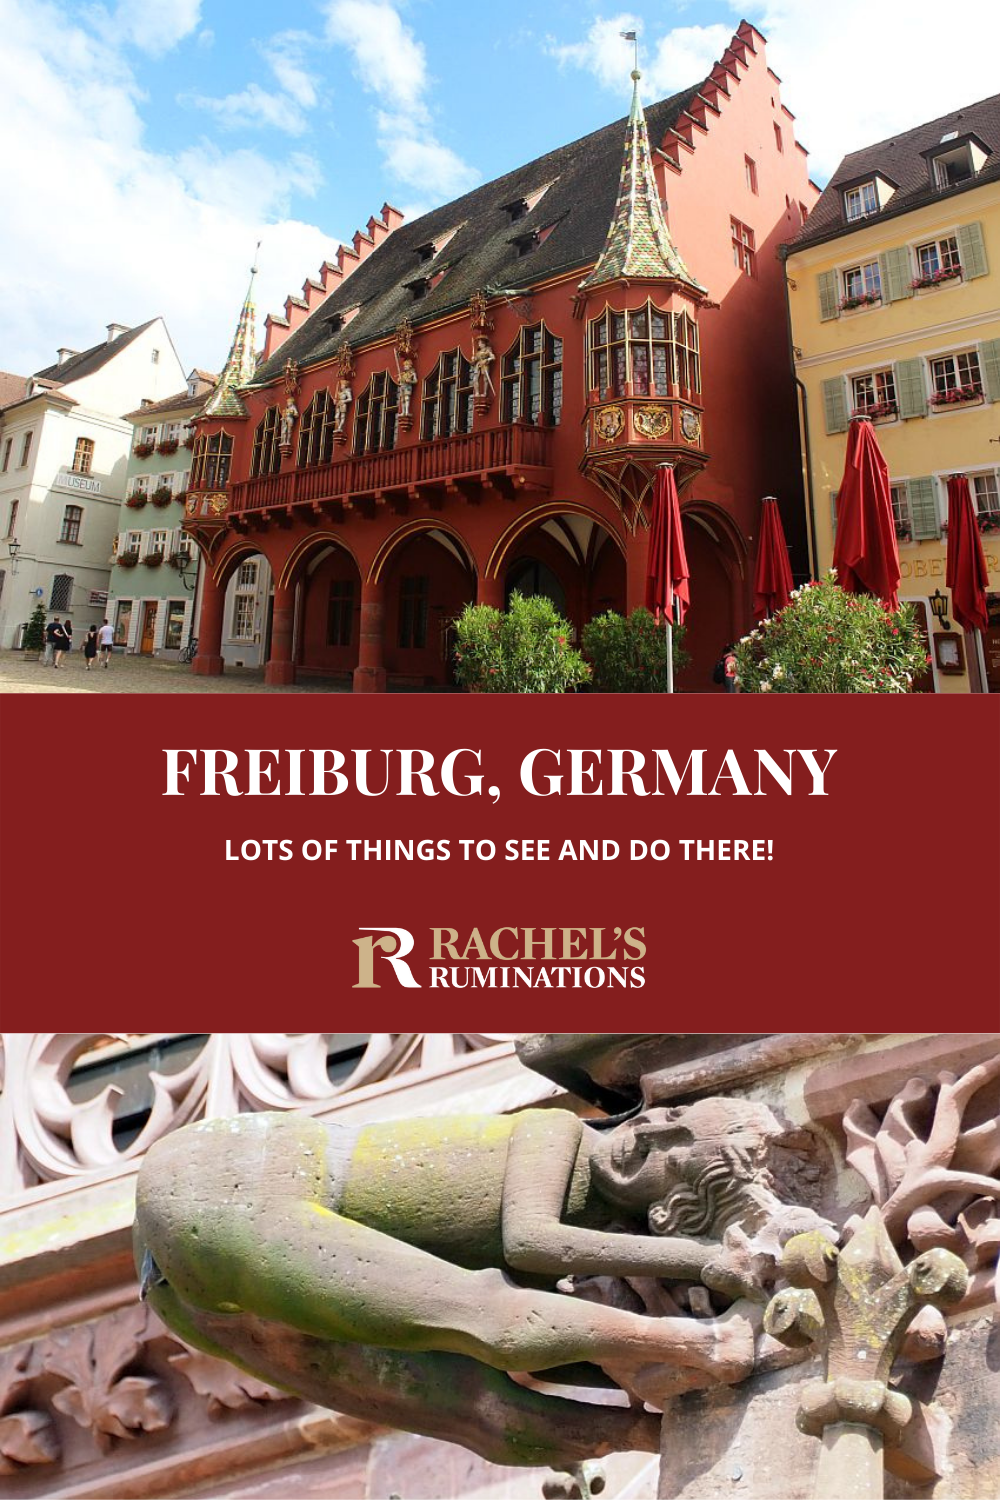 Freiburg, Germany, is a lovely little city with narrow cobbled streets, charming architecture, and a gorgeous cathedral. Read here about all the things to see and do in Freiburg in 1 day. via @rachelsruminations